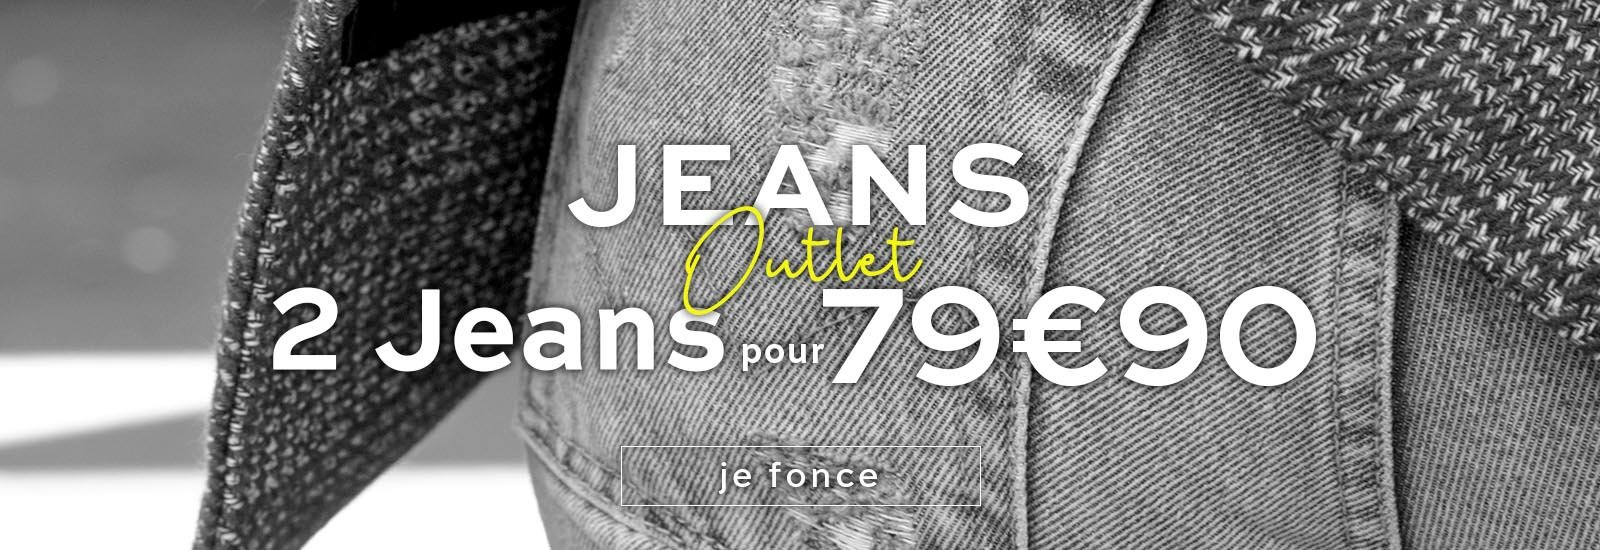 crazy days outlet jeans